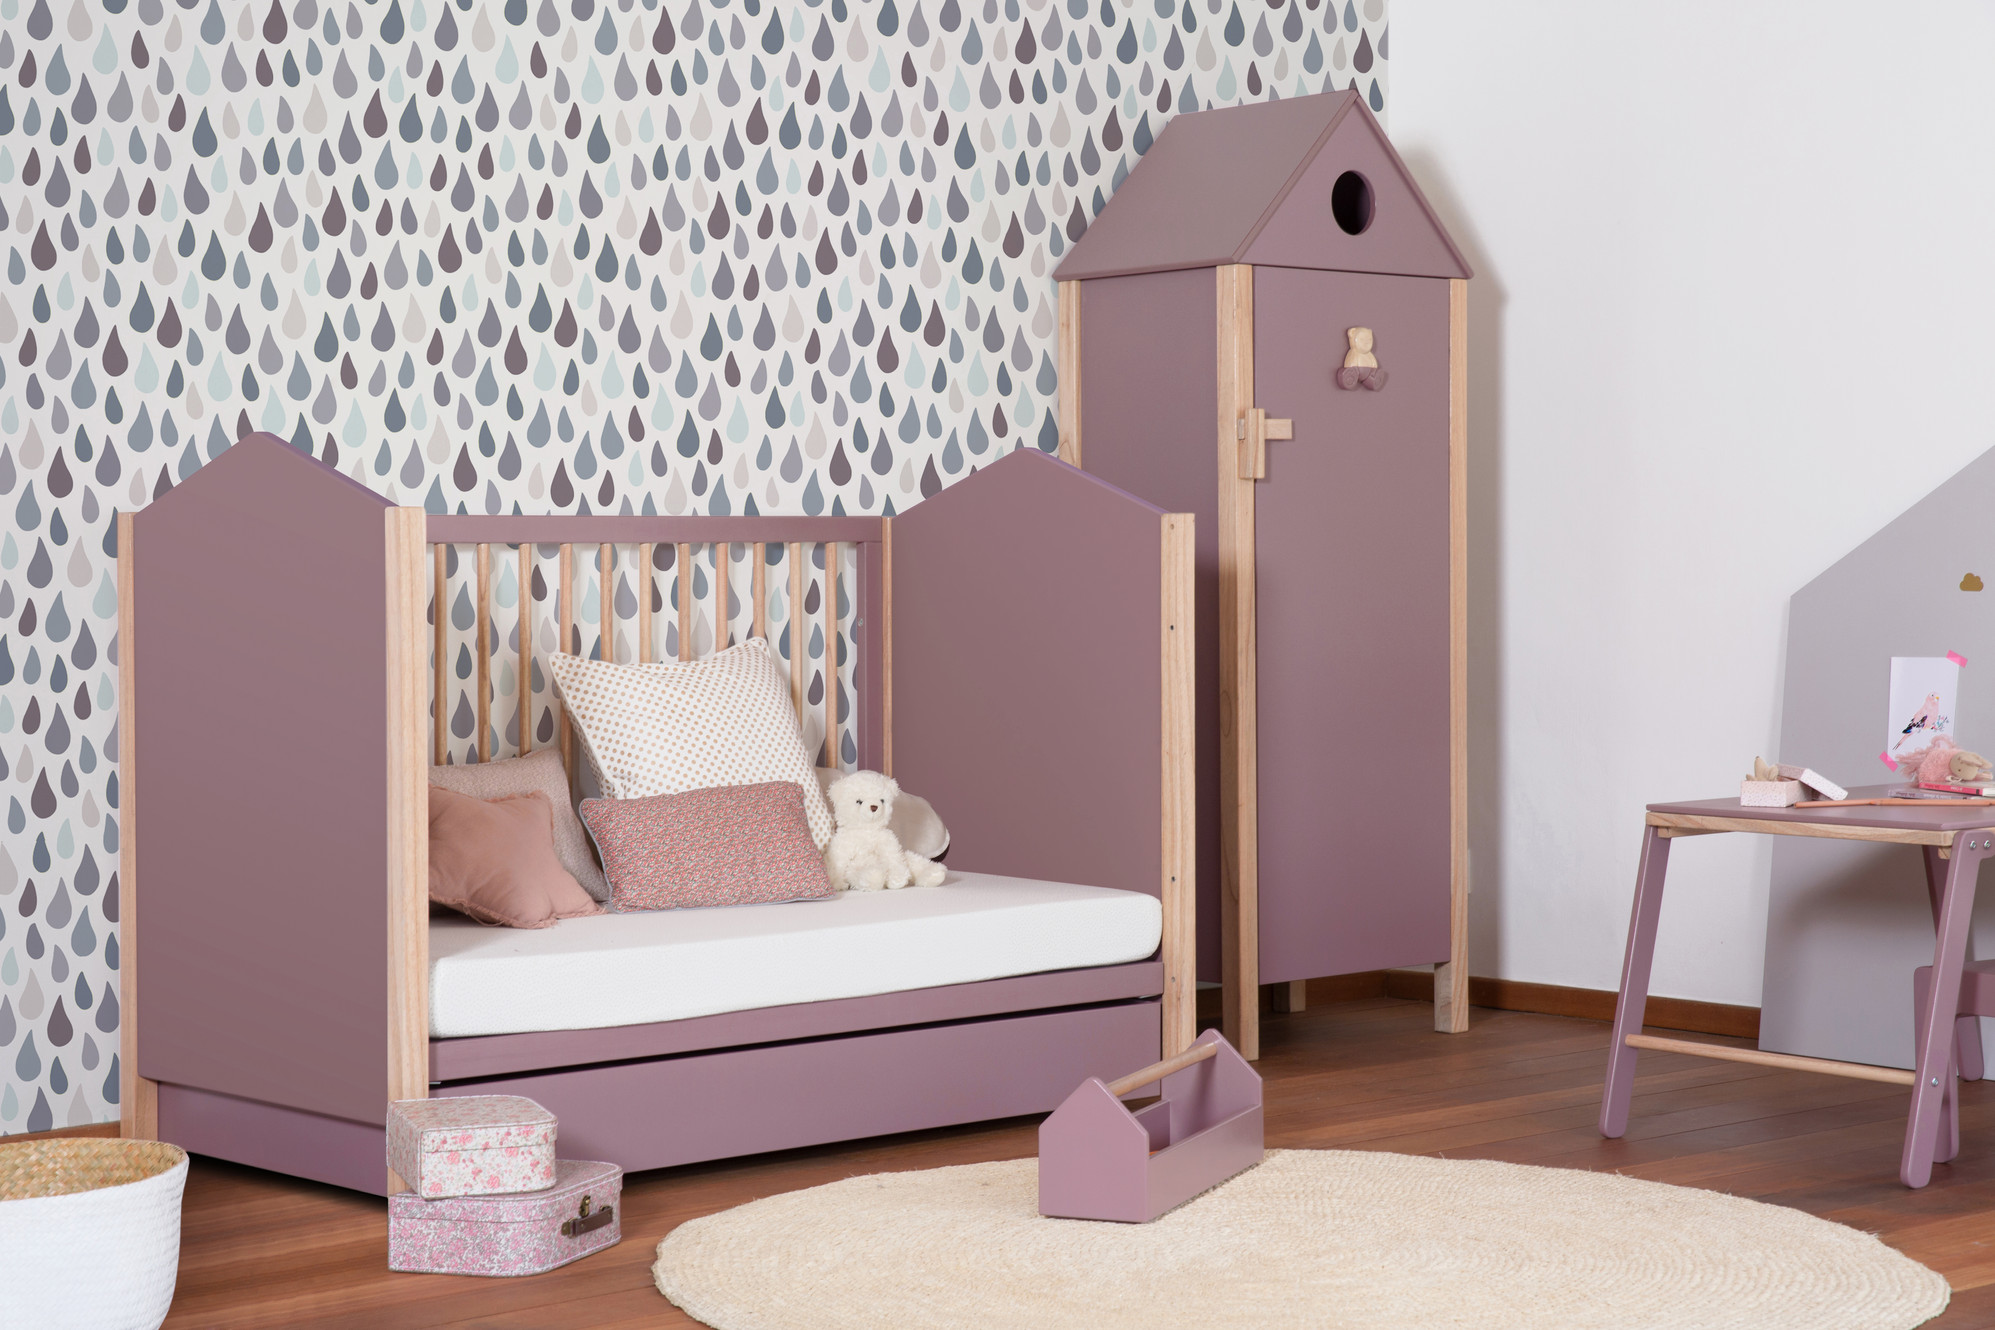 Mini Table A Langer theo-bebe - childrens bedroom furniture, c'est pour la vie !